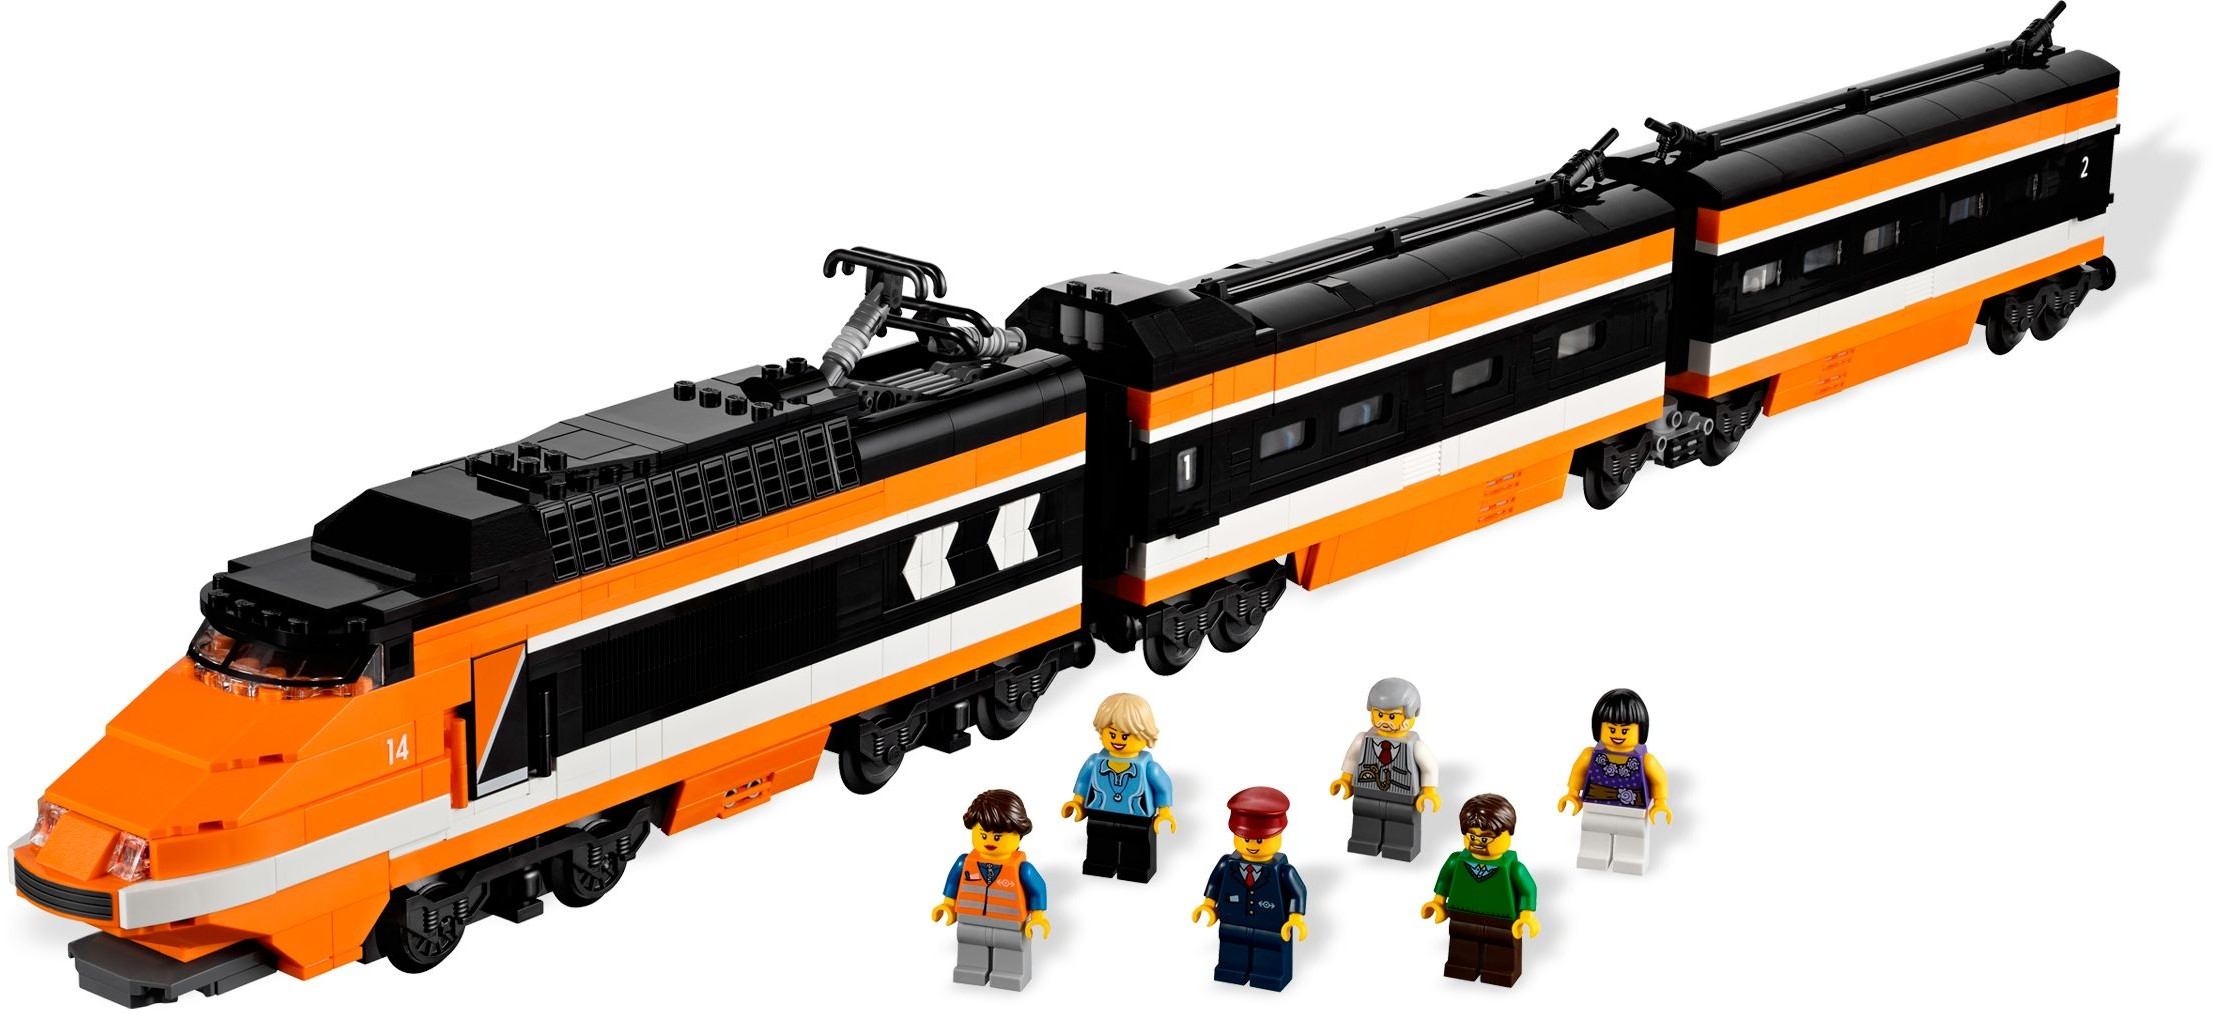 Advanced Models | Trains | Brickset: LEGO set guide and database